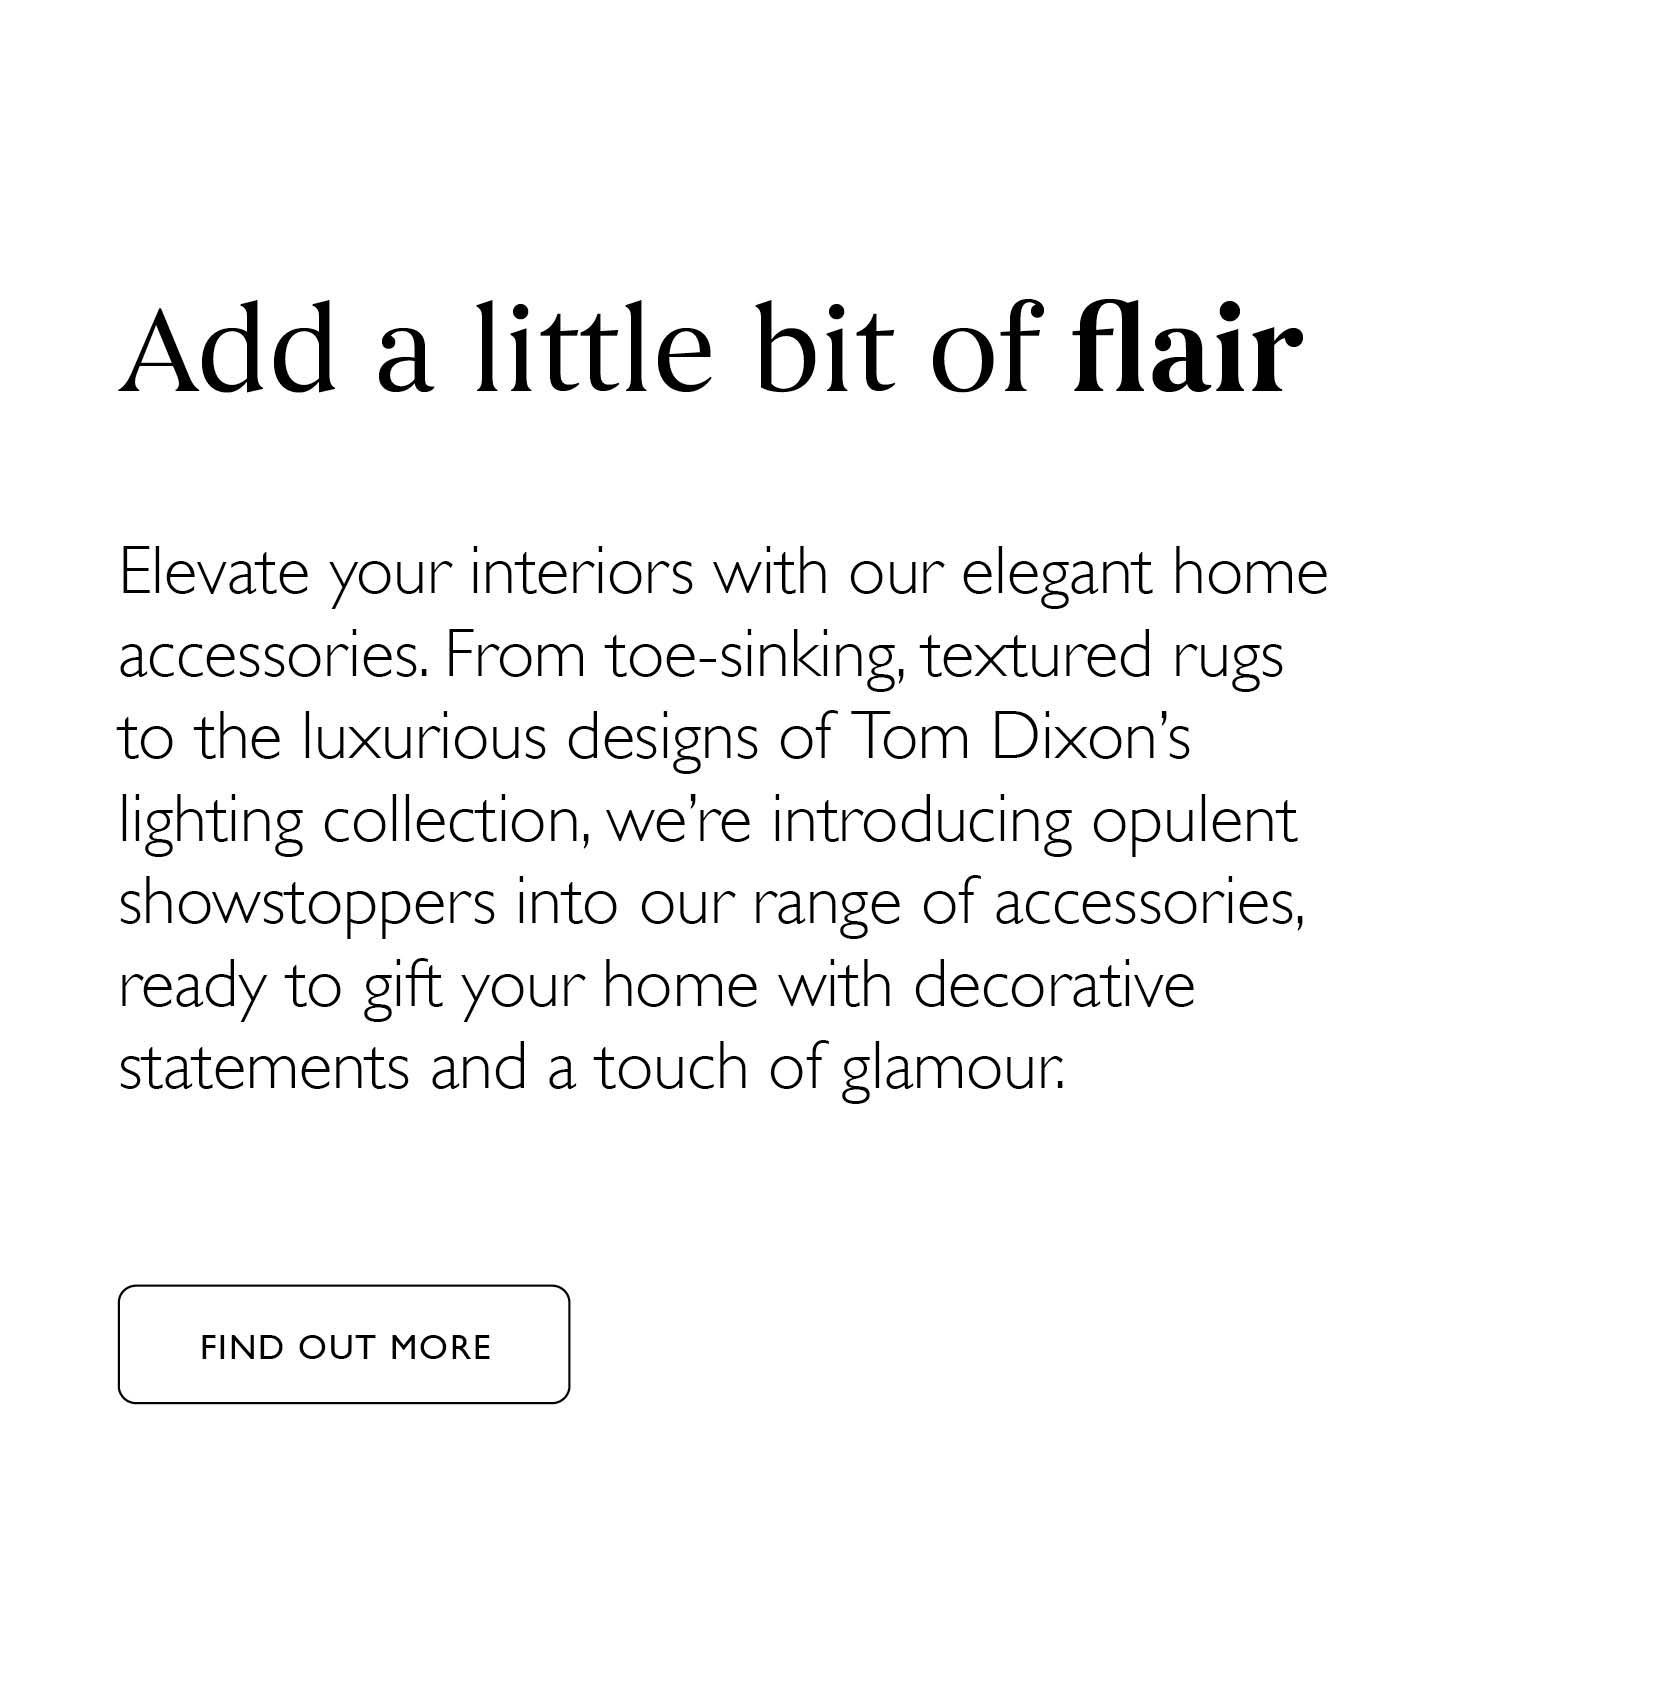 Add a bit of flair - Elevate your interiors with our elegant home accessories. Click here to find out more.